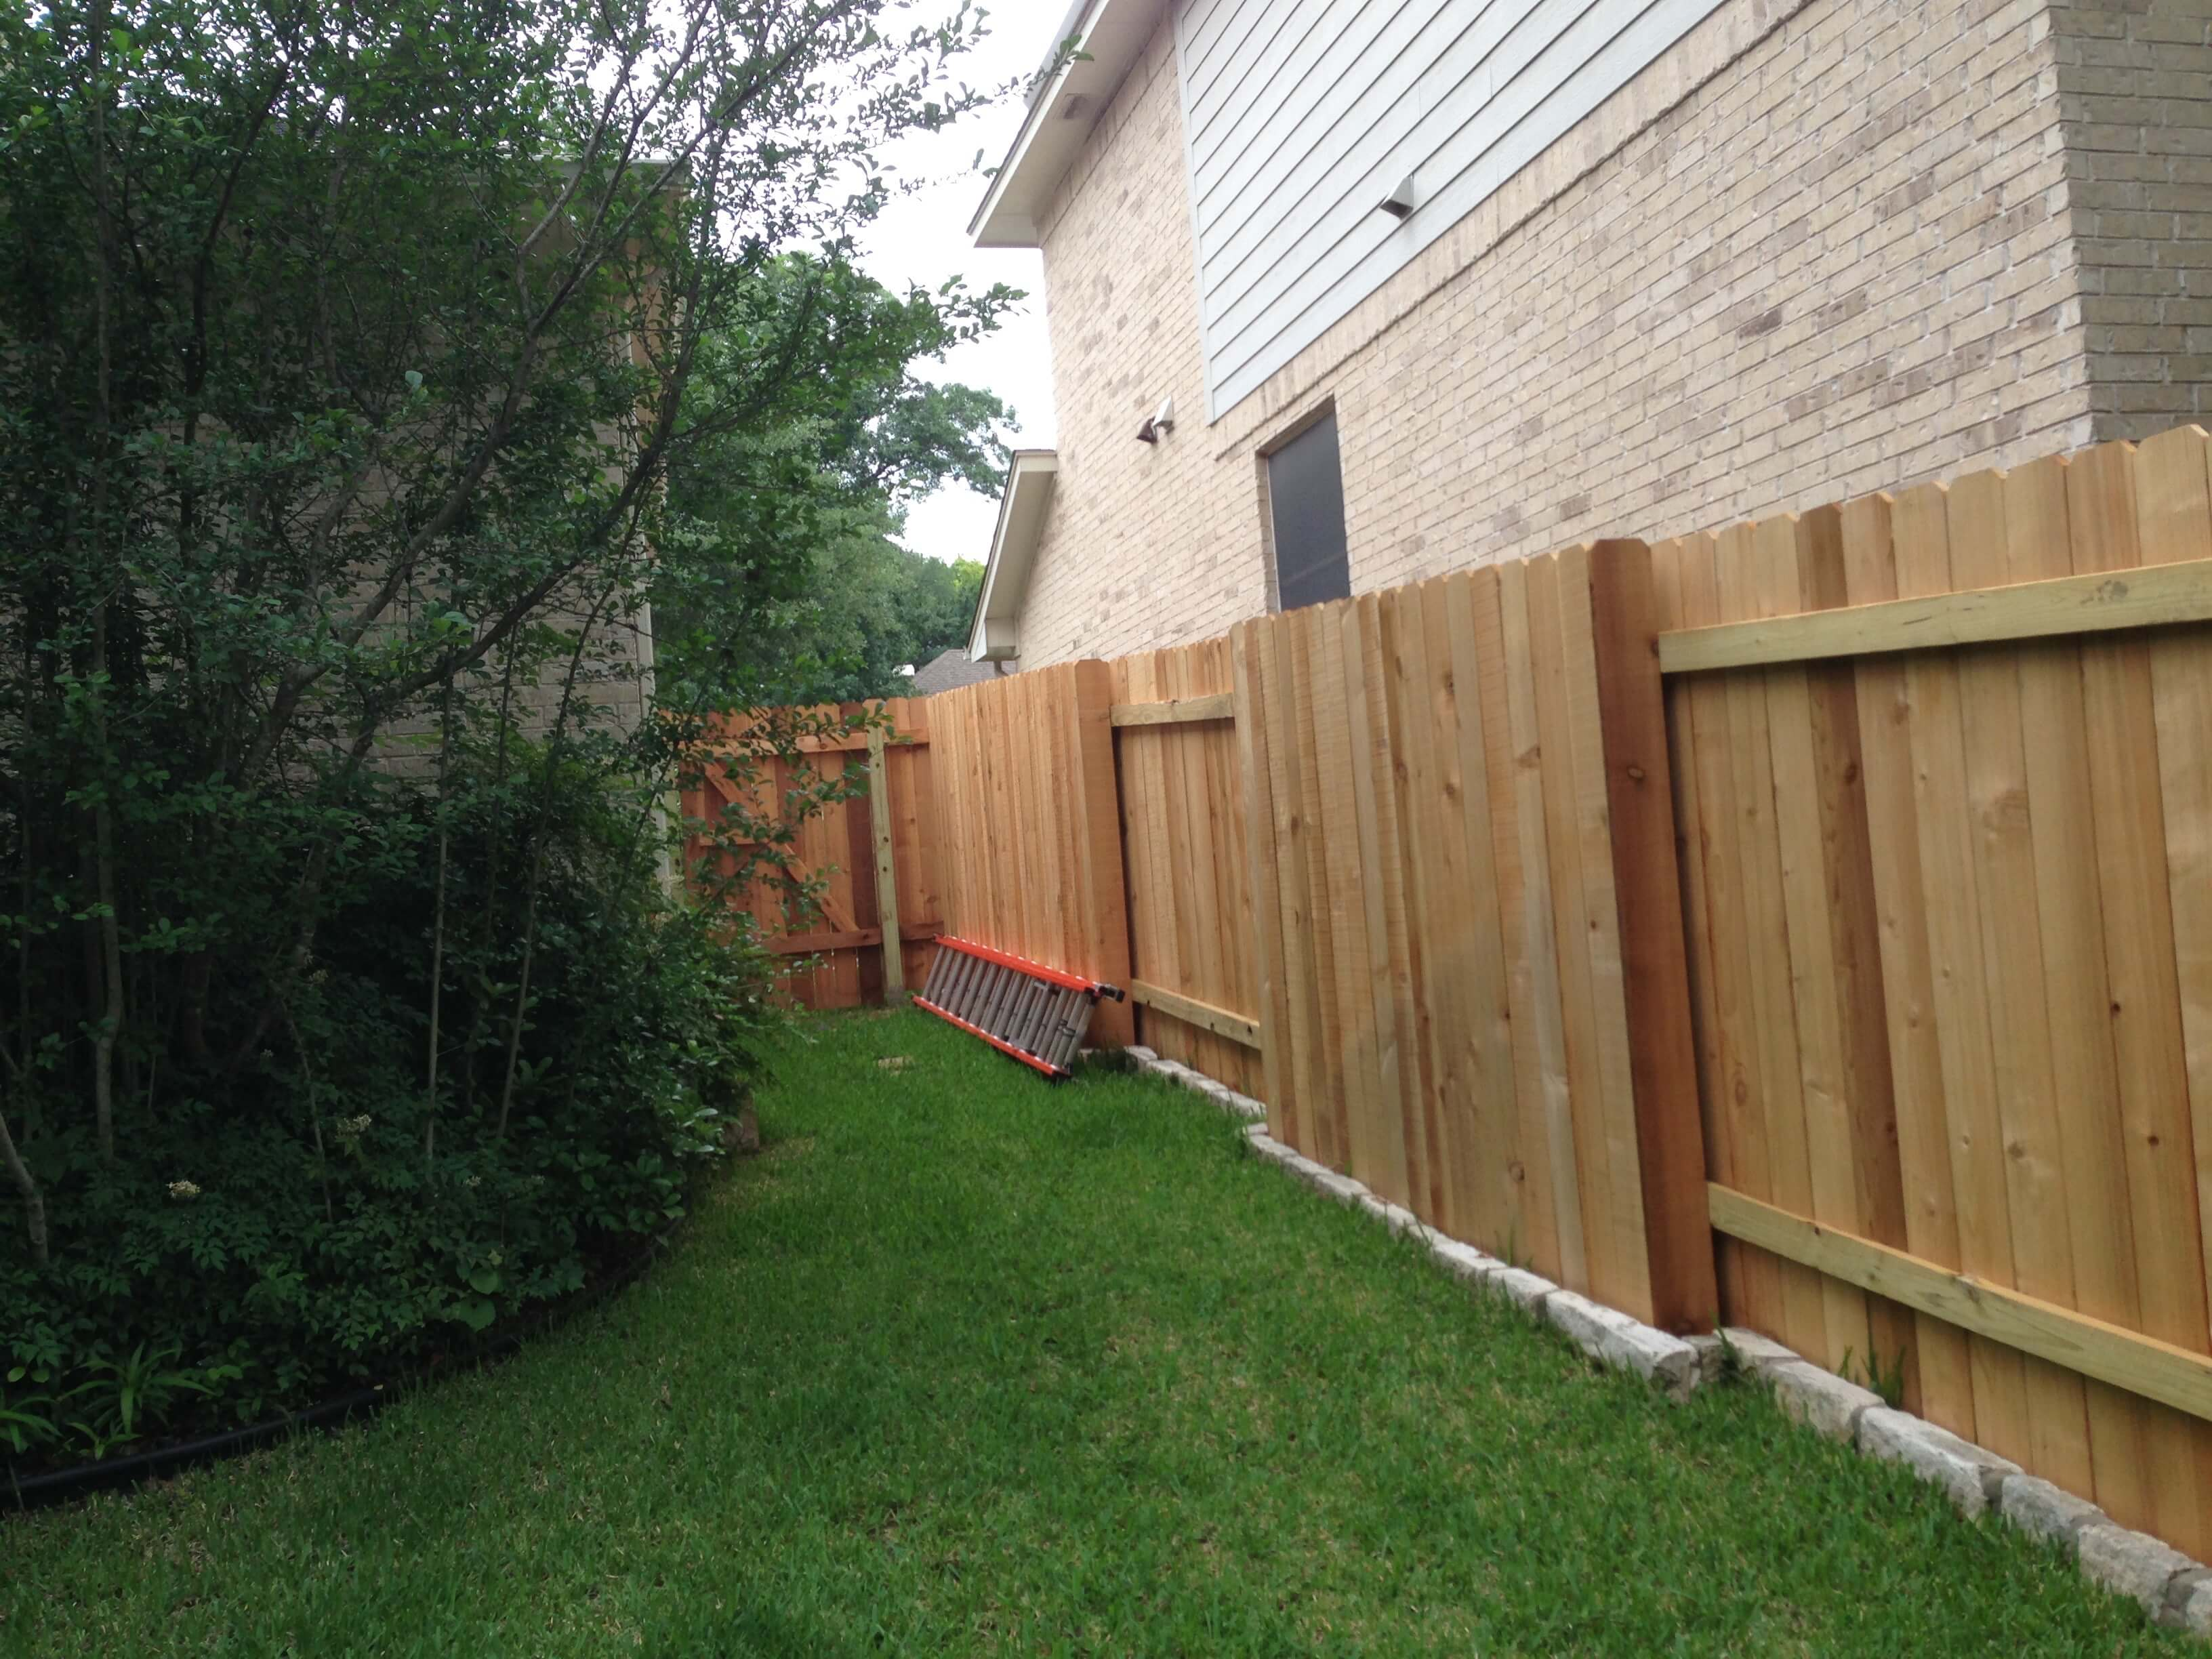 Good Neighbor Wood Fences - Apple Fence Austin